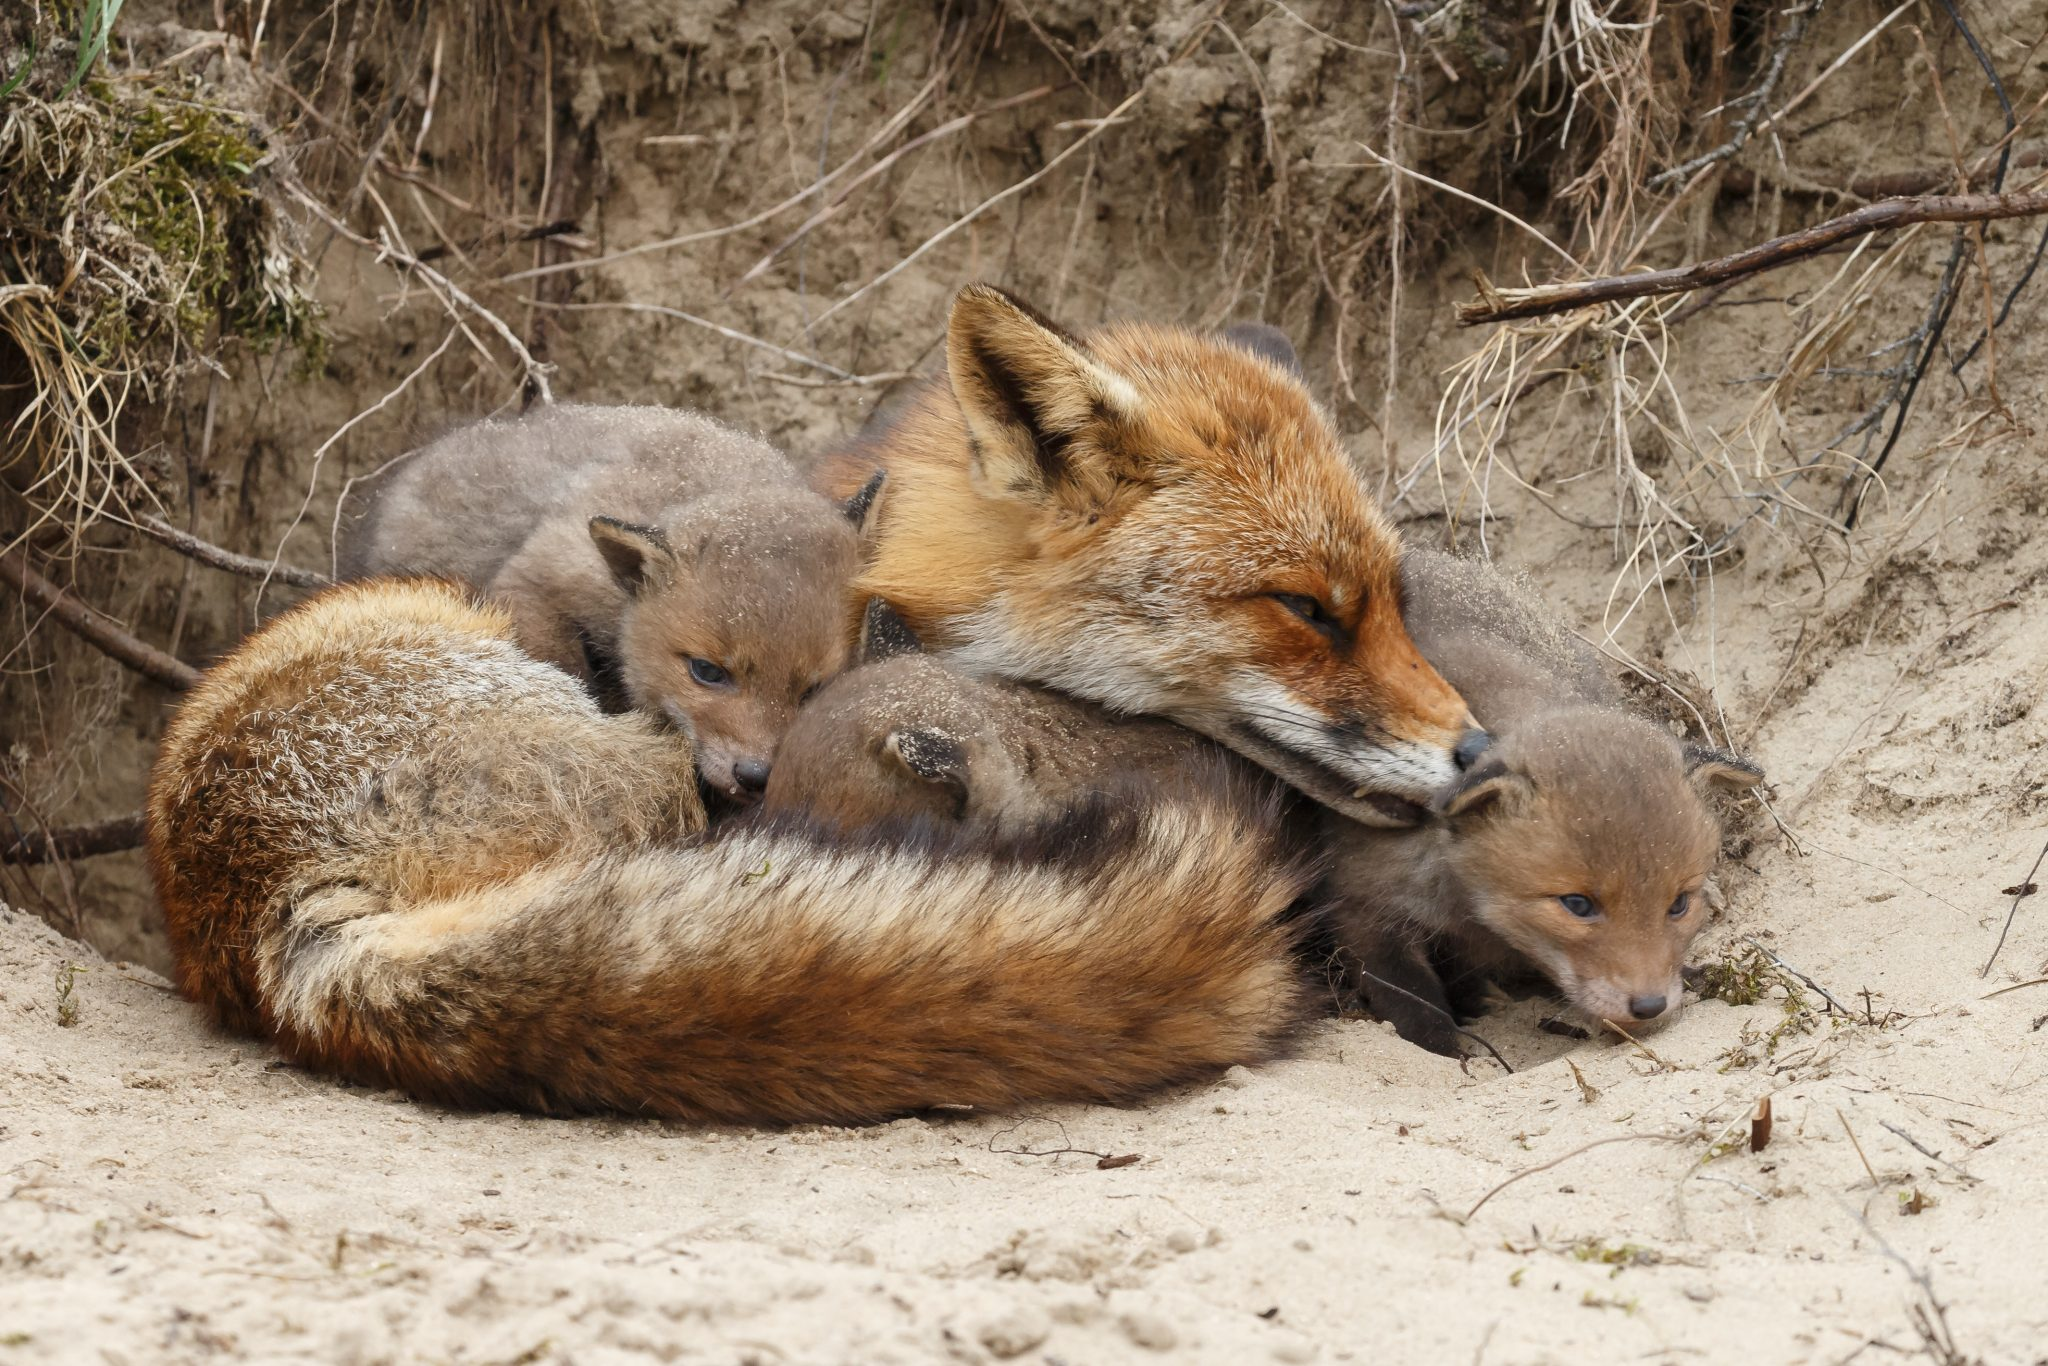 Petition: Ban Fox and Coyote Penning in All 50 States